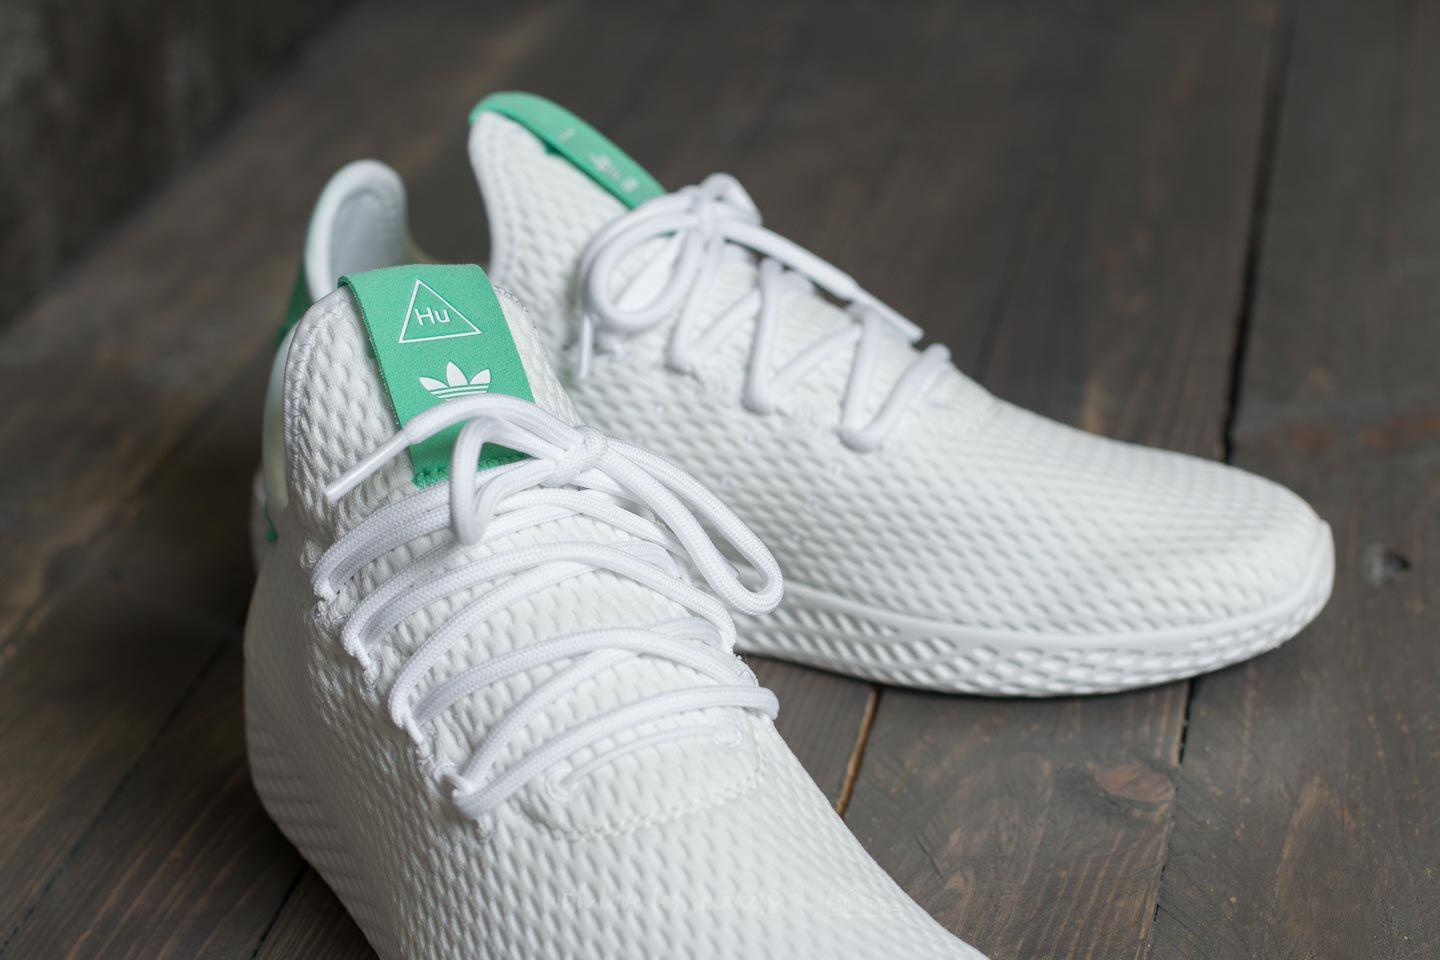 fa32b3bafd109 Lyst - adidas Originals Adidas Pharrell Williams Pw Tennis Hu Ftw ...